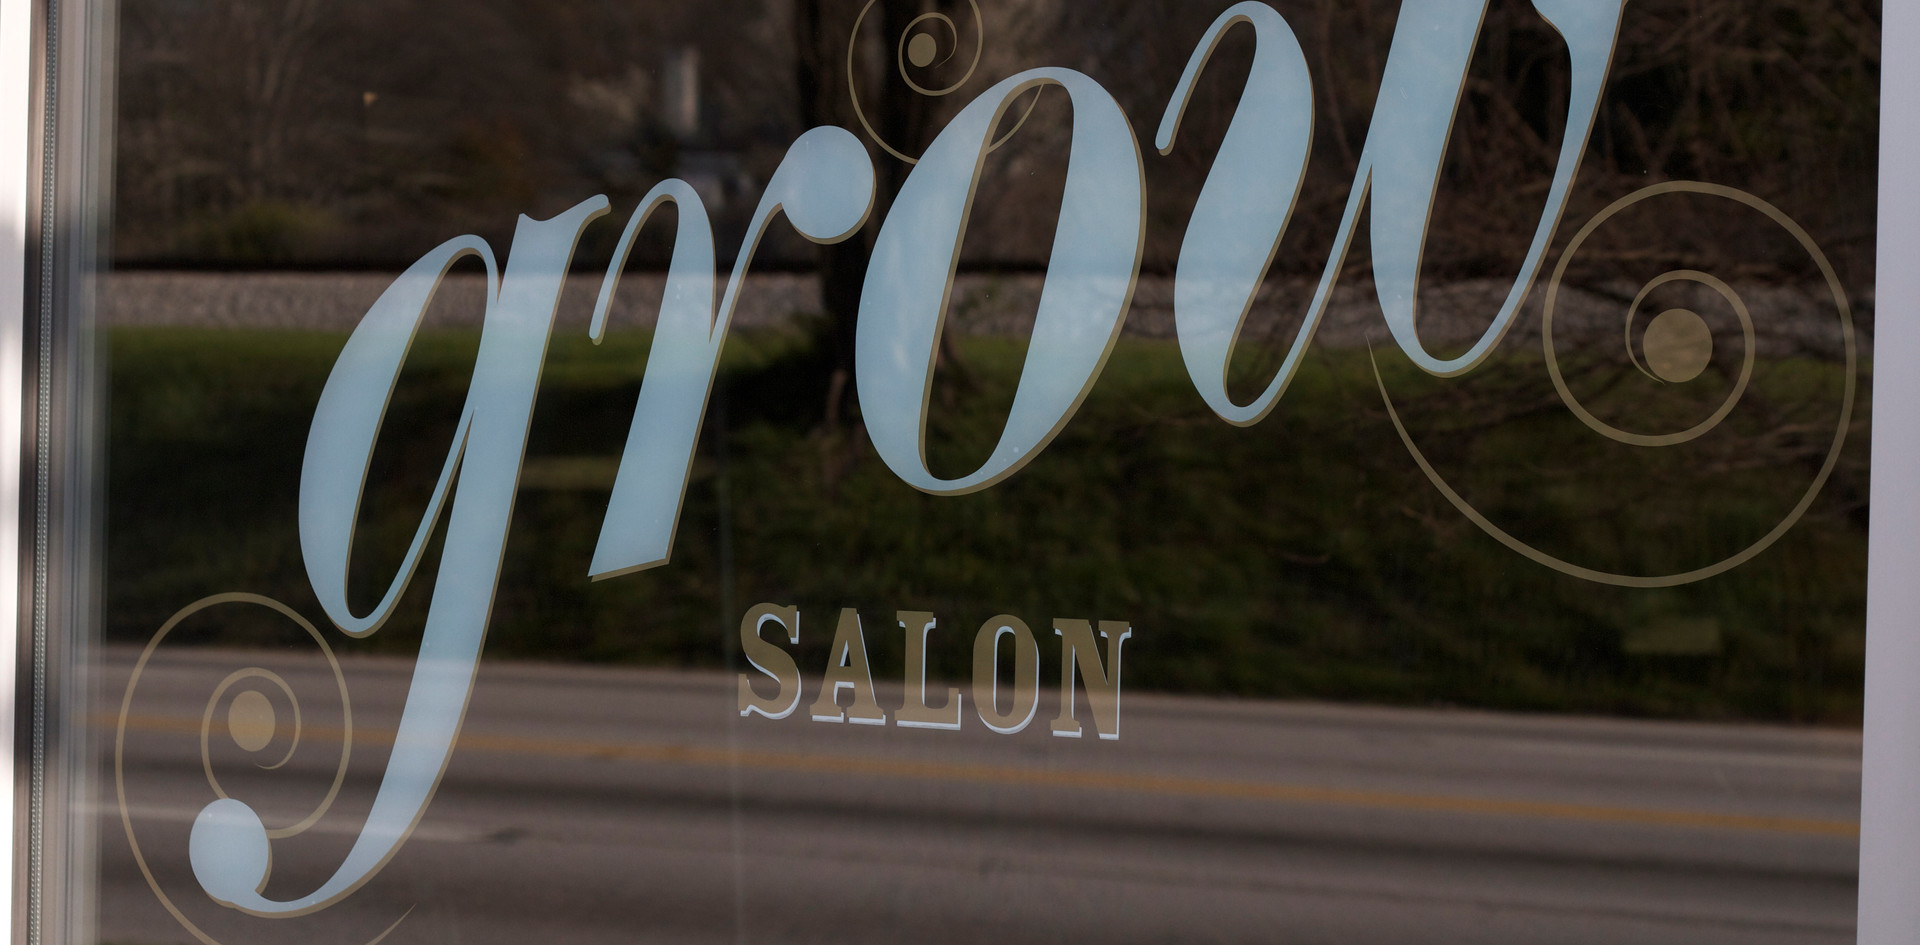 Metallic gold and white window decals evoke classic barber signage.